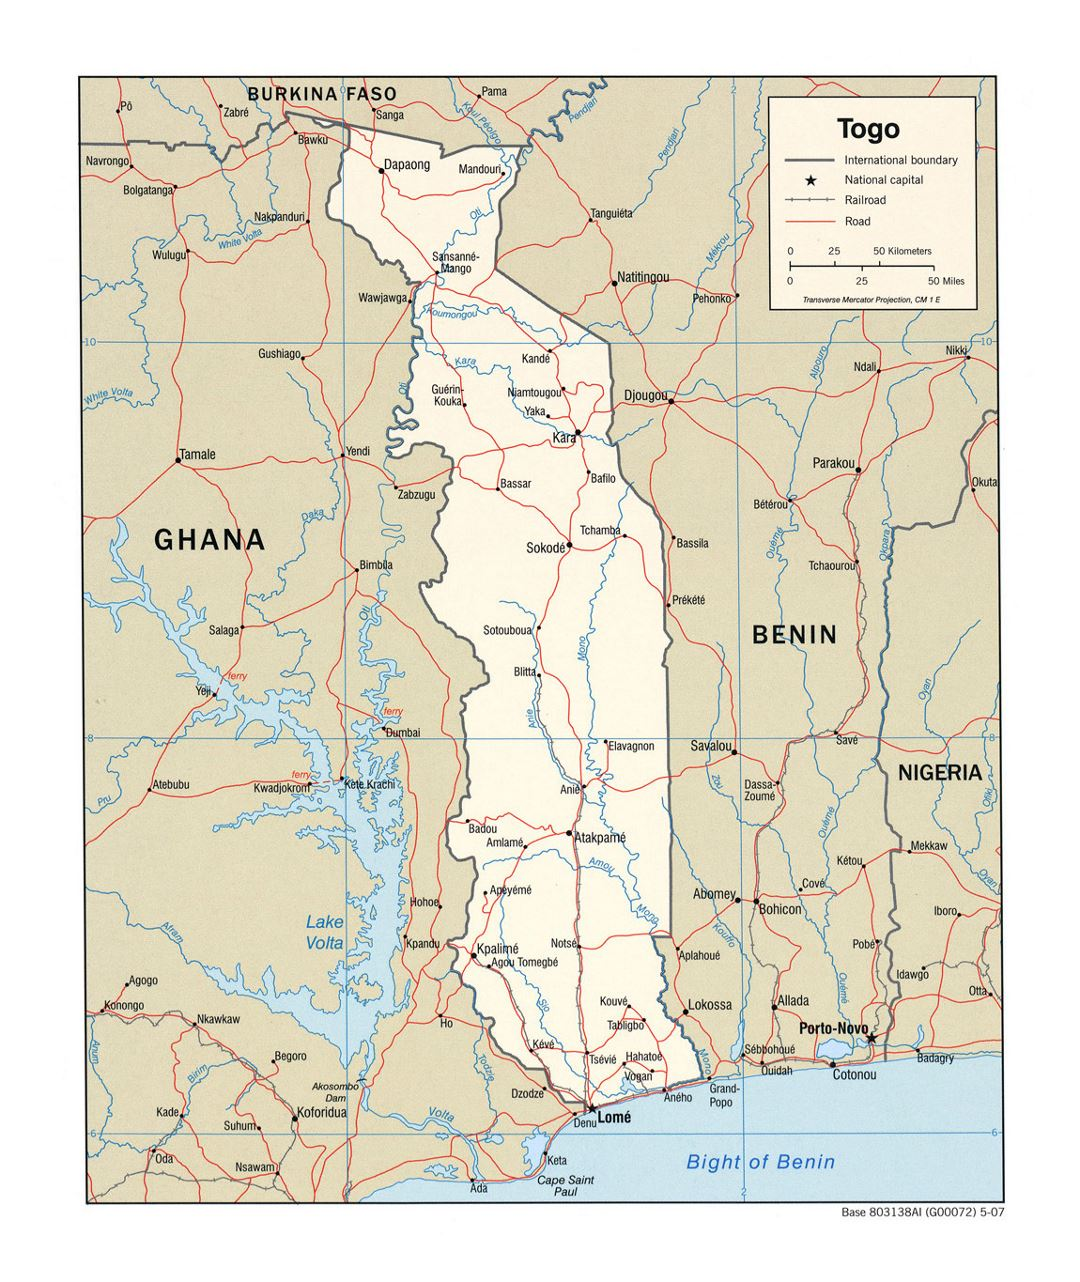 Detailed political map of Togo with roads, railroads and major cities - 2007